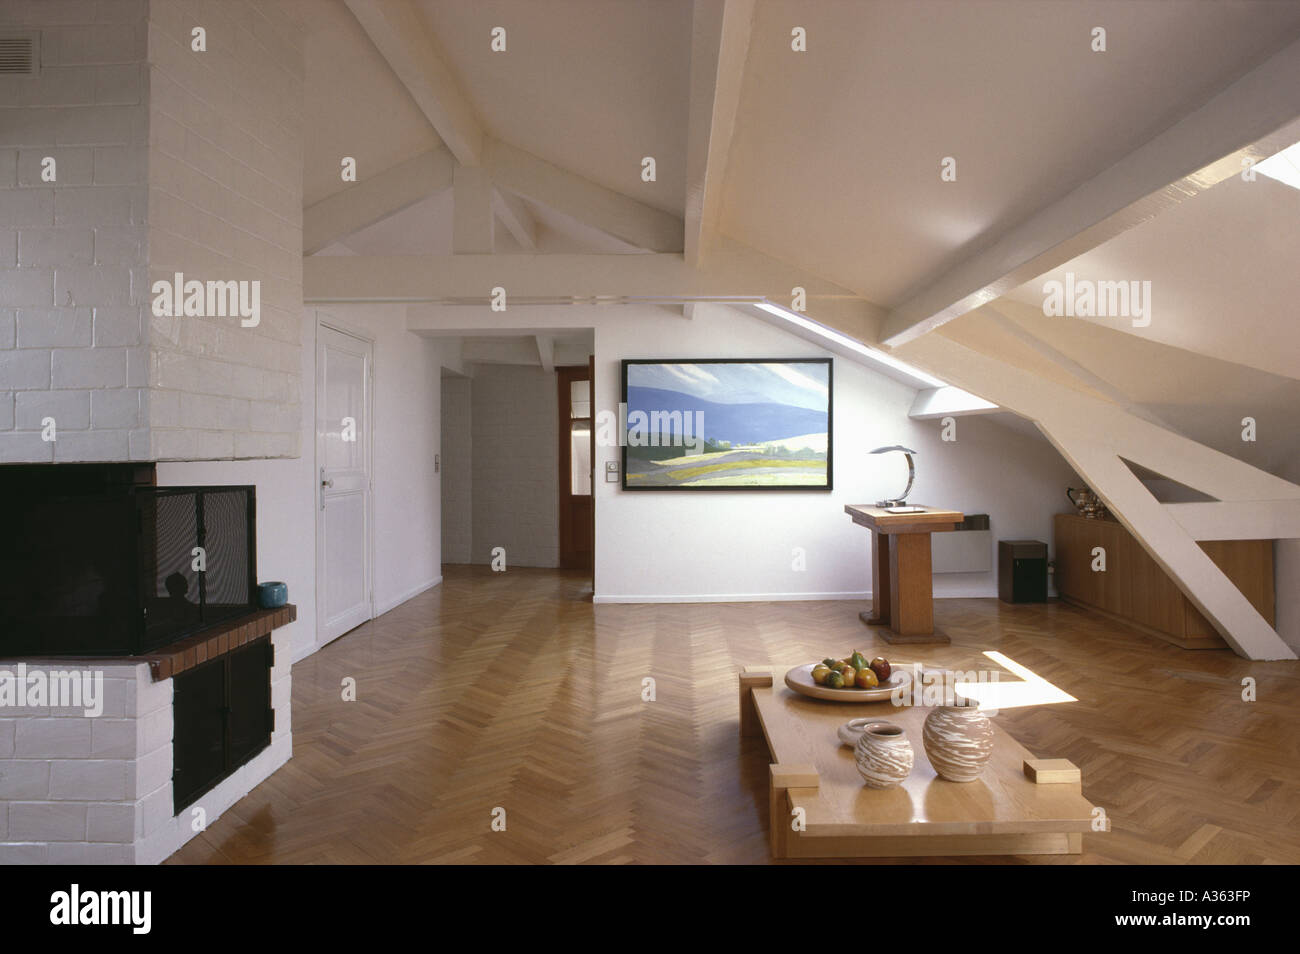 Edwardian Home Interiors Openplan Study Living Room With Wooden Parquet Floor In